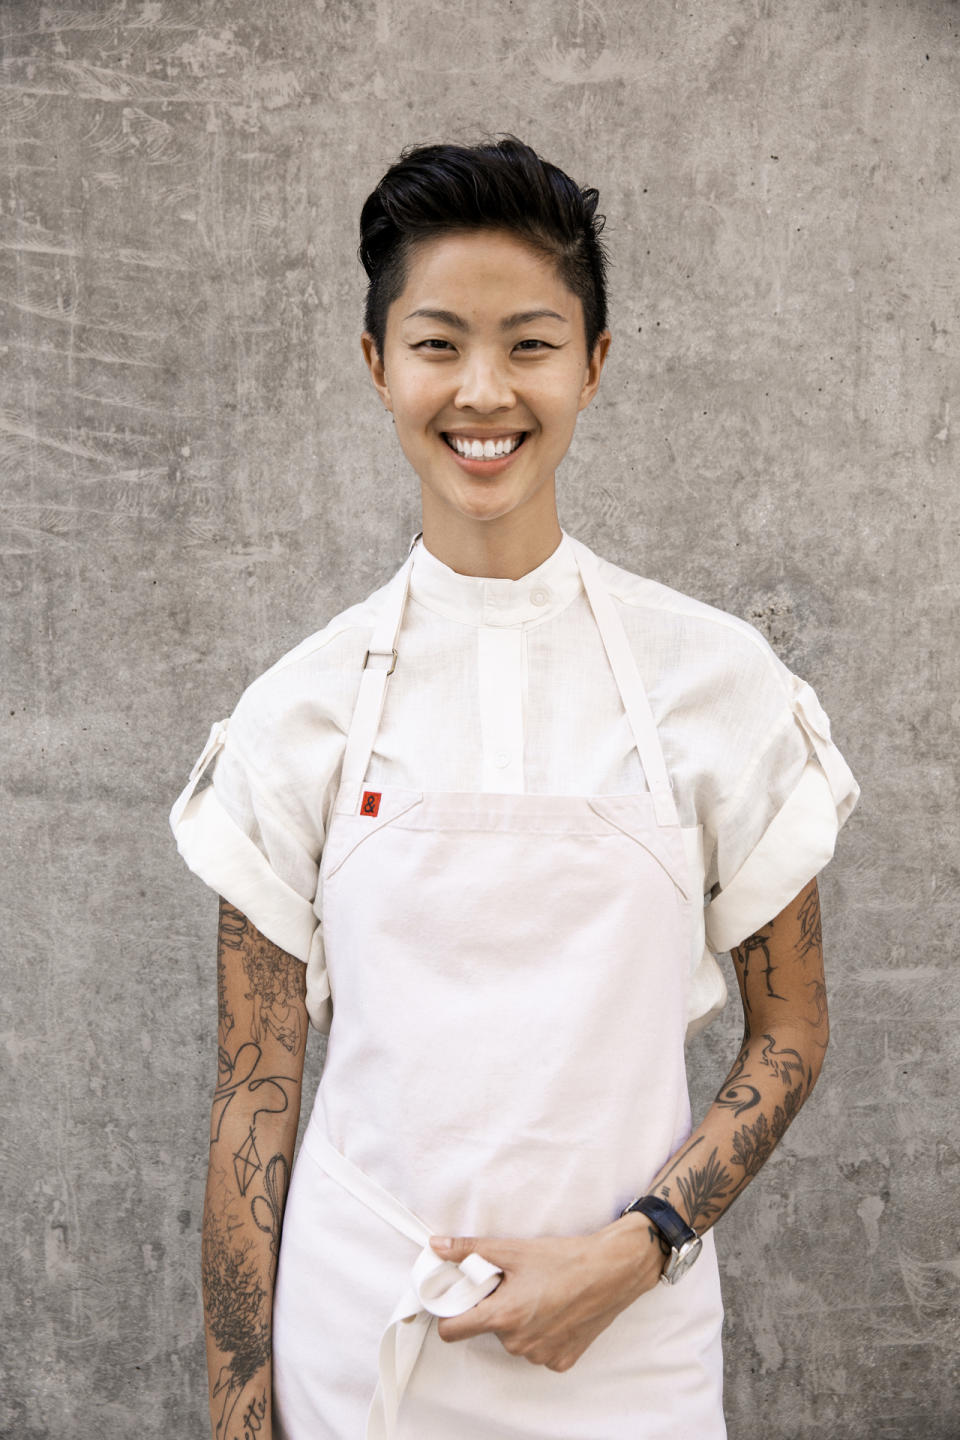 Chef Kristen Kish co-hosts TruTV's